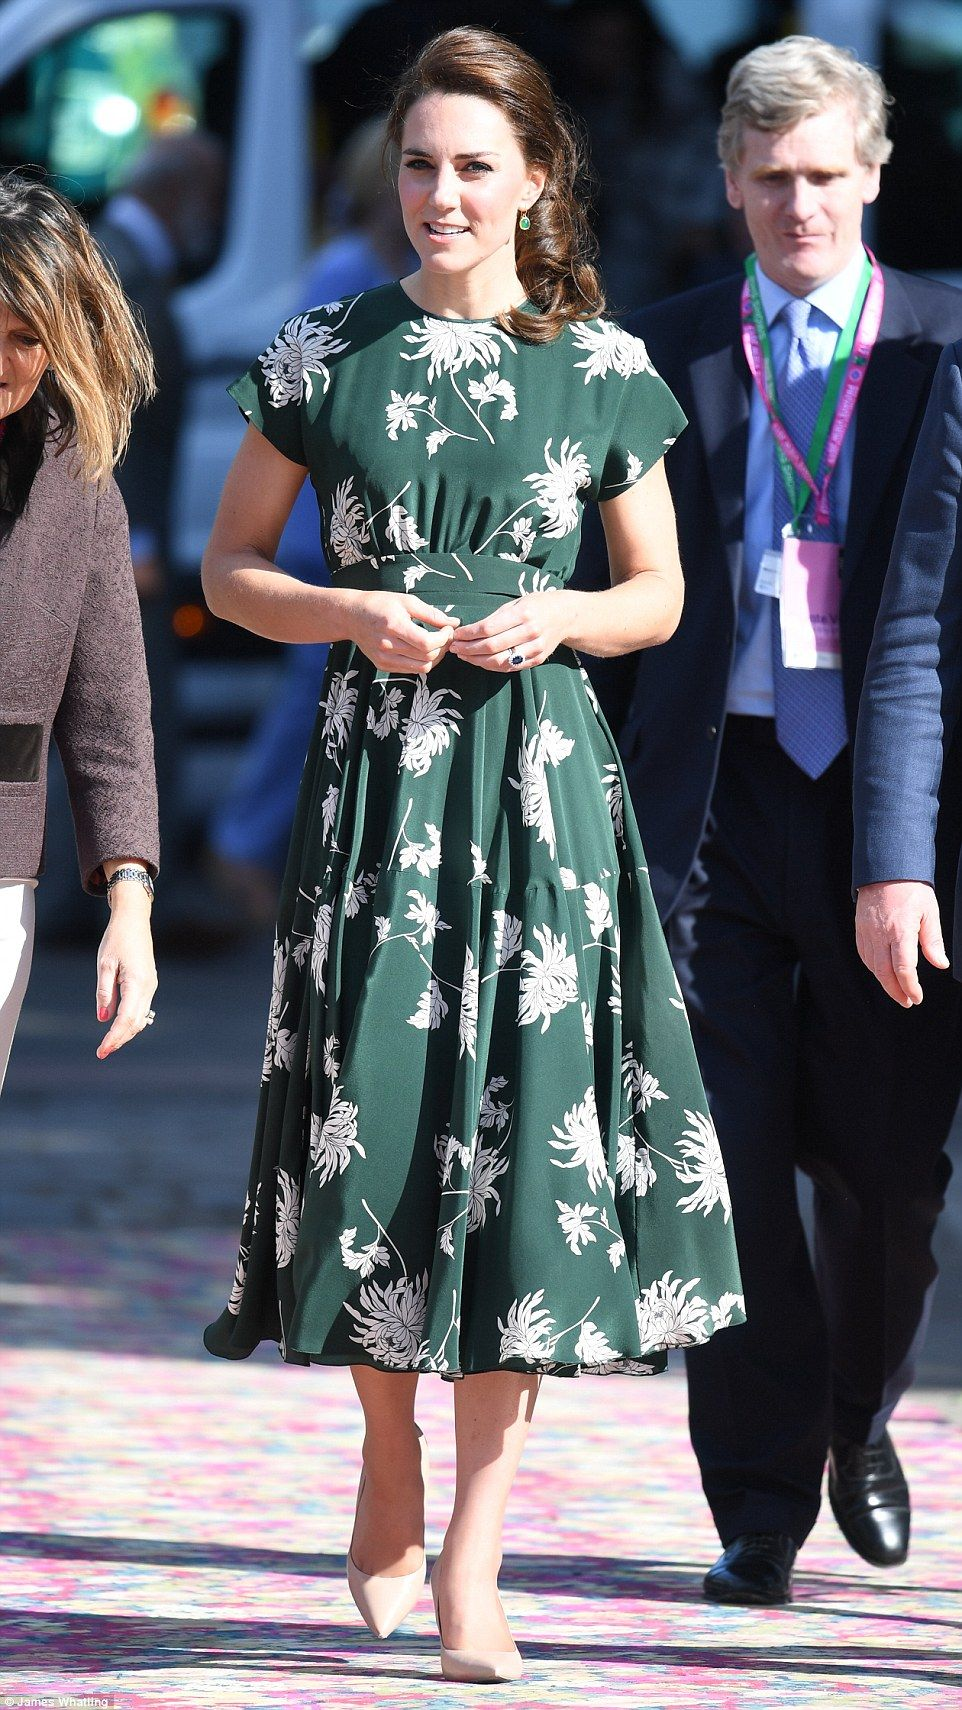 Kate drops a tomato then eats it from the FLOOR at Chelsea Flower Show